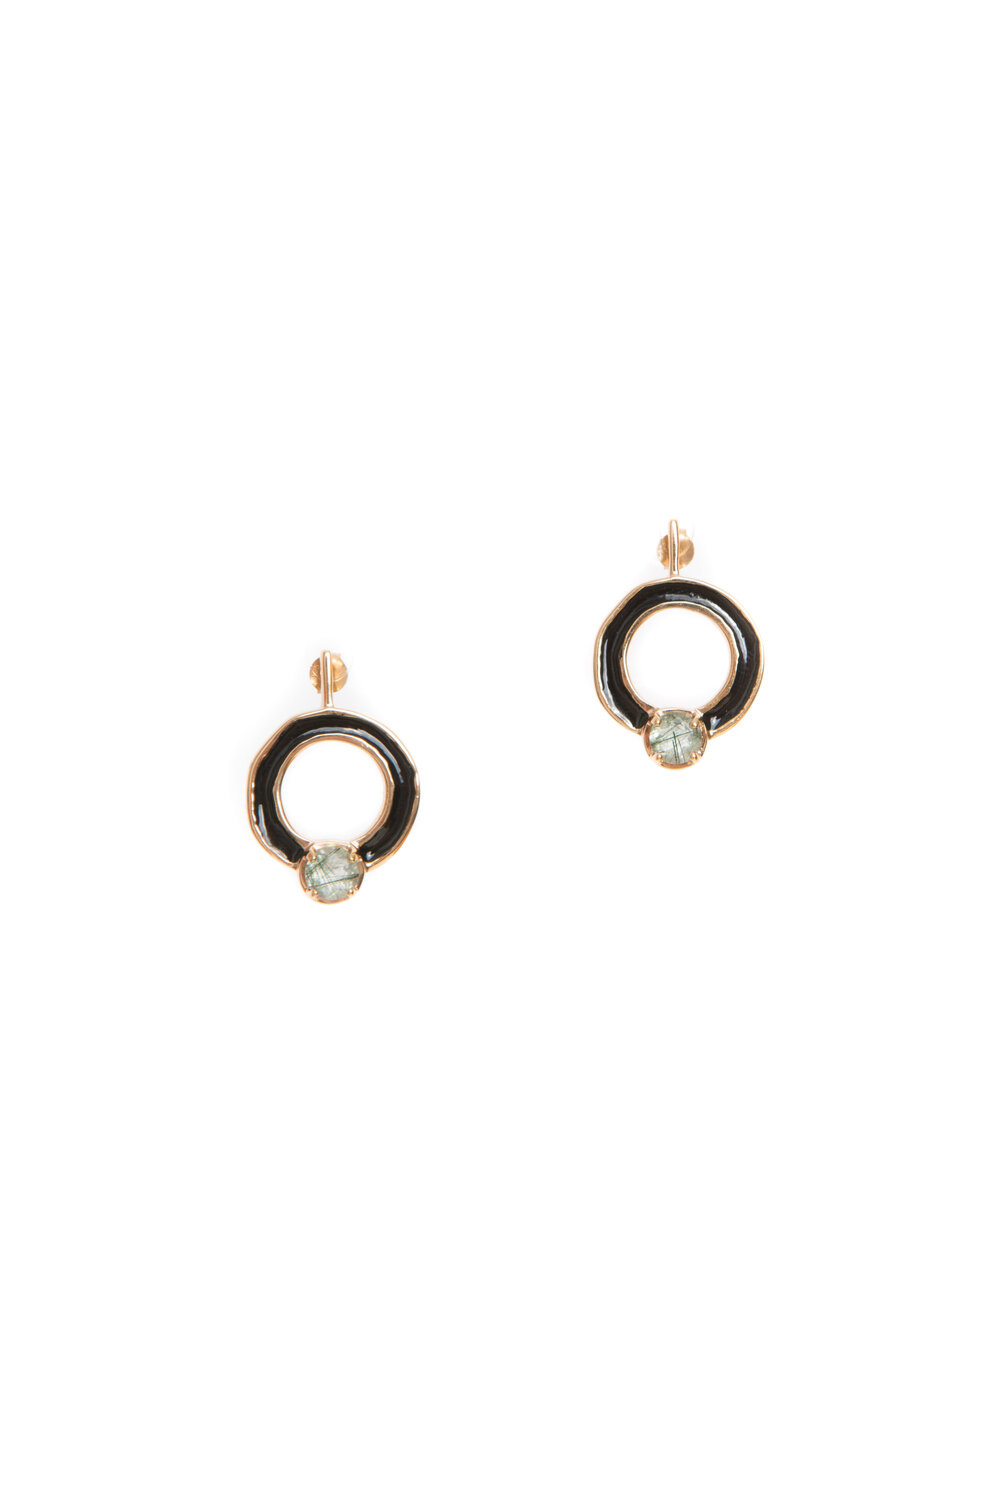 Hailey Gerrits Cronus Earrings- Green Rutilated Quartz